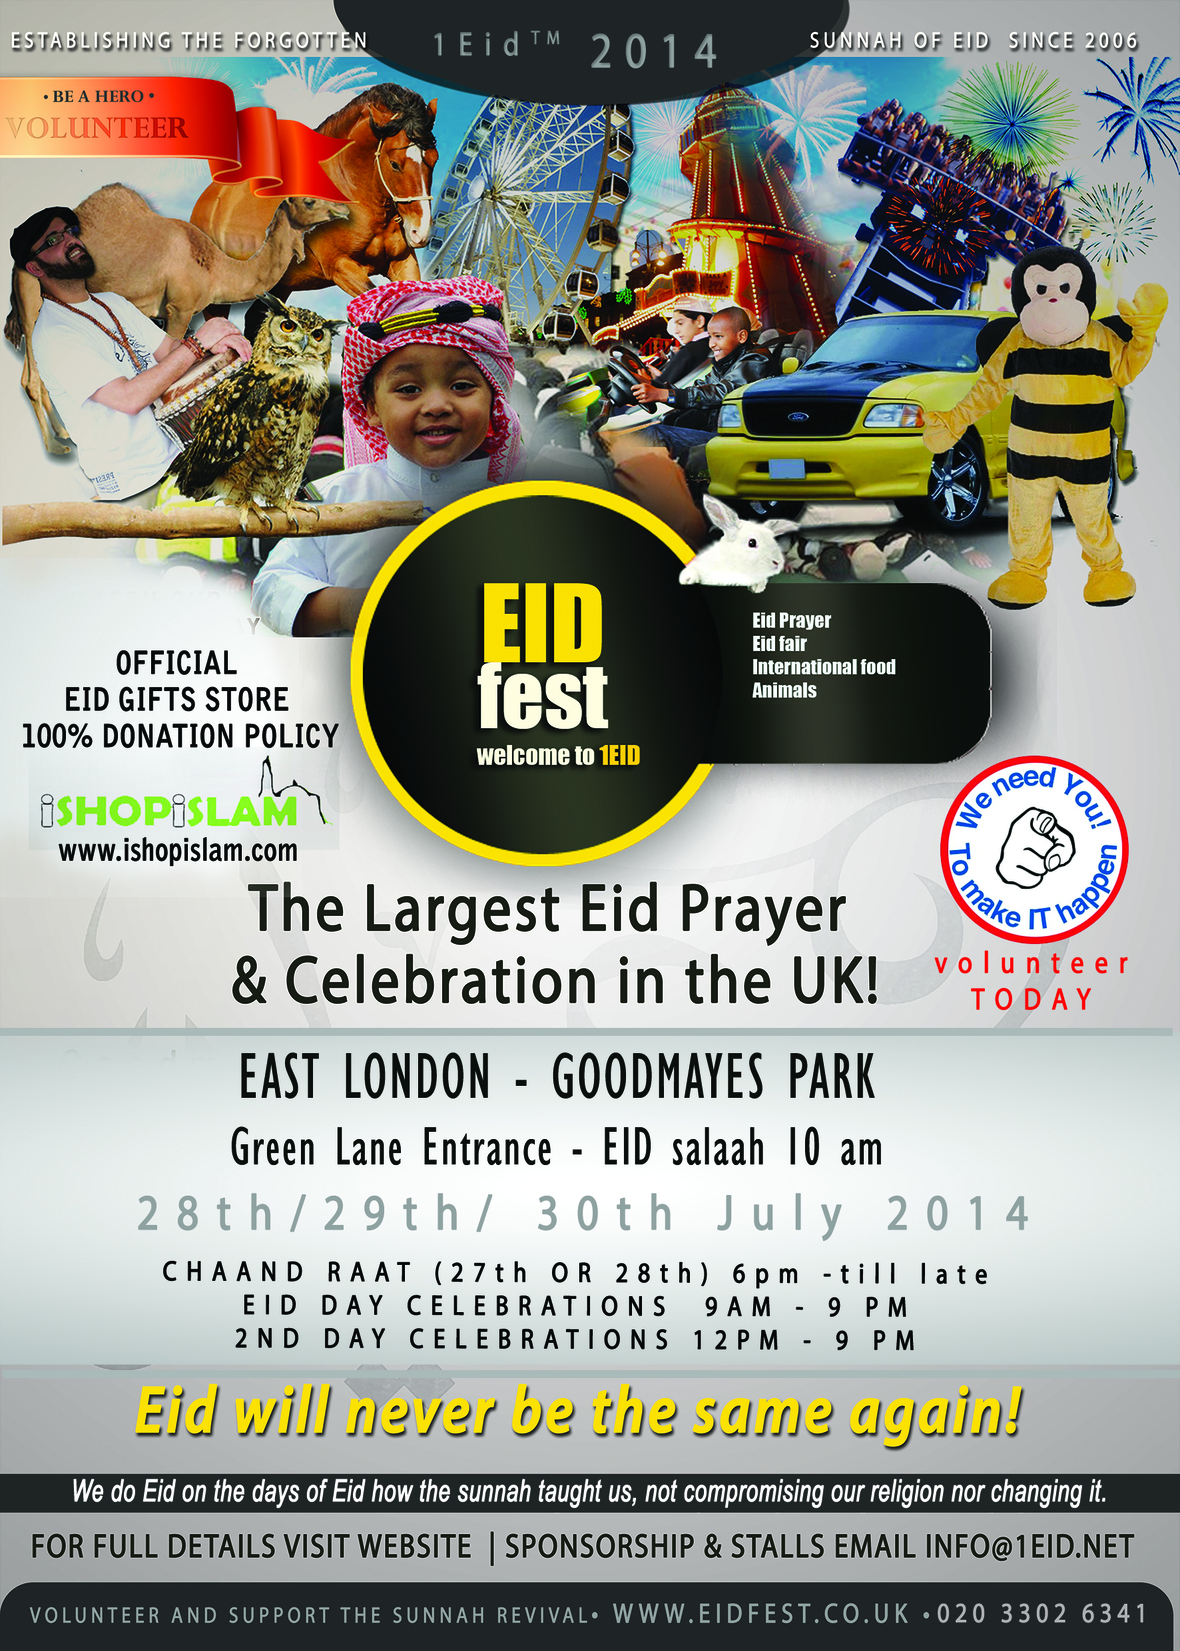 Breaking News - Brent Bans Eid ruining Eid for Thousands